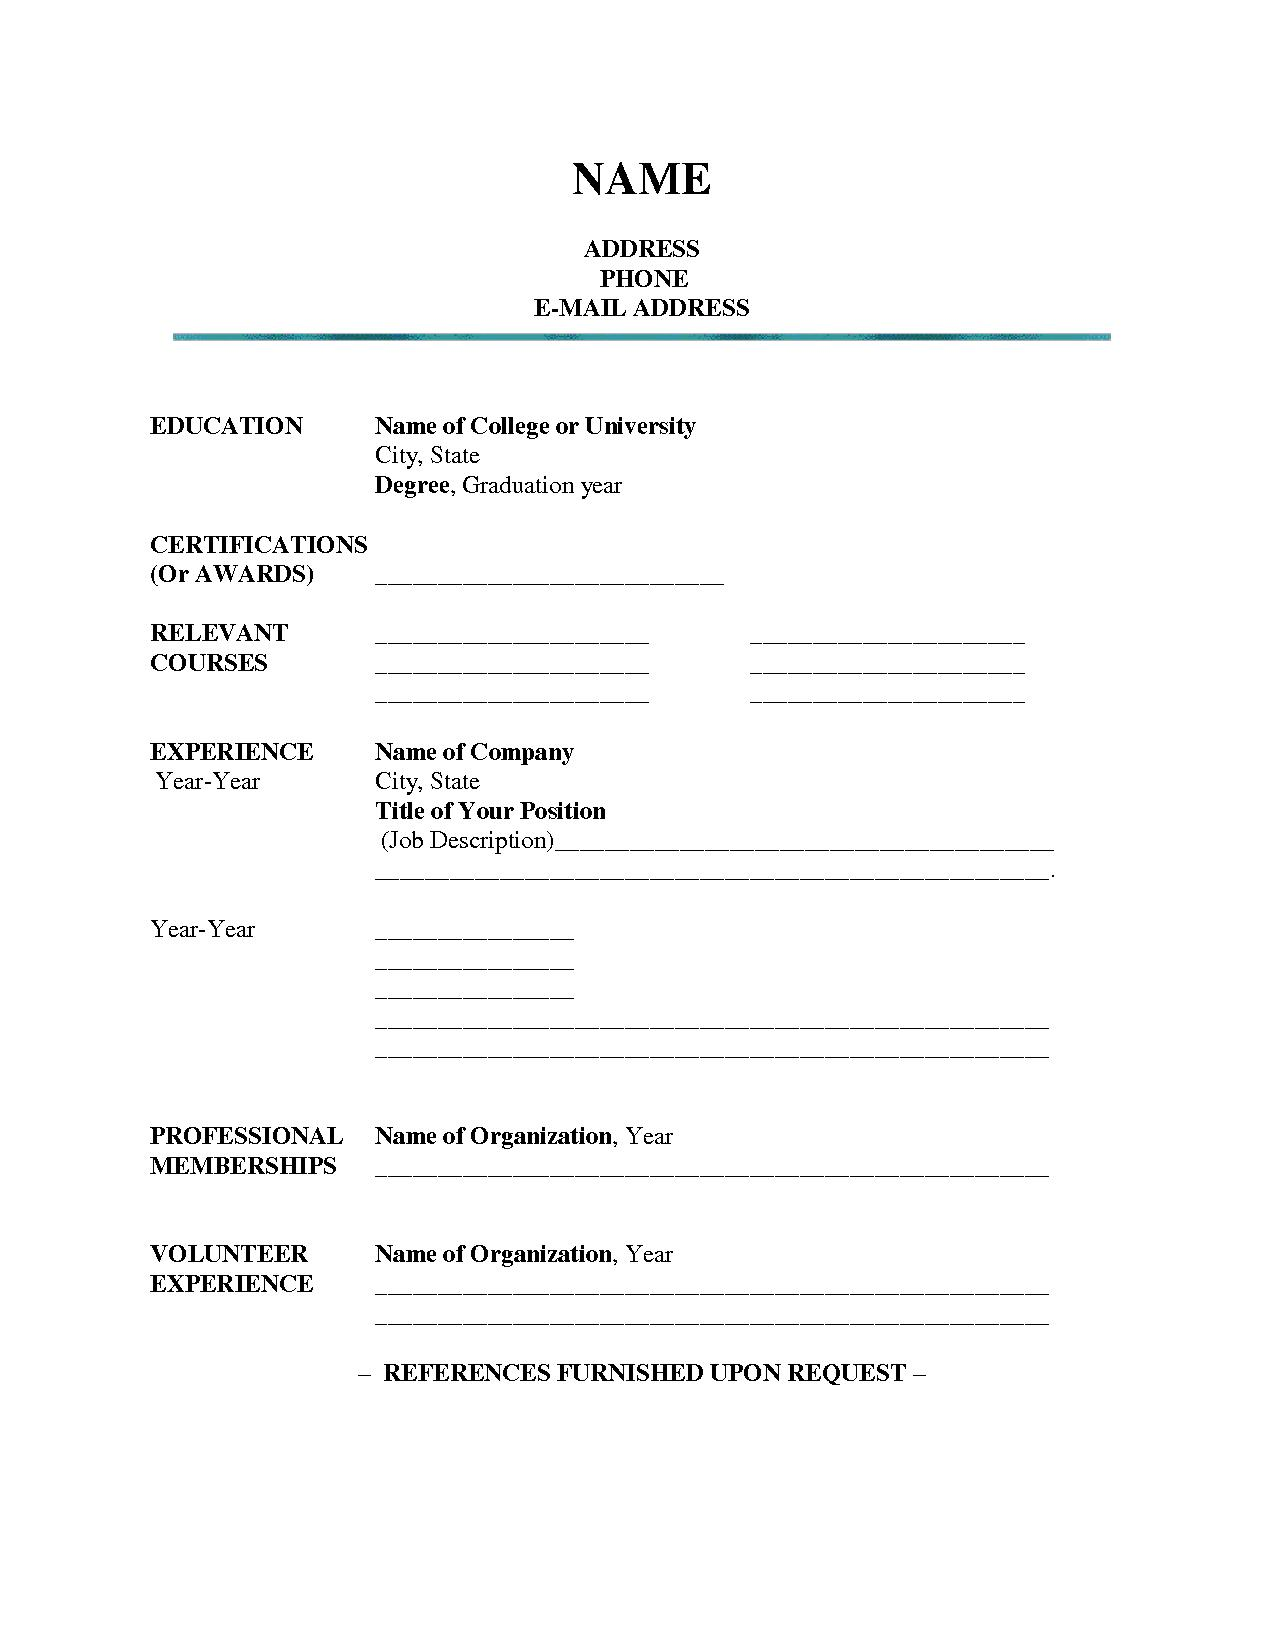 Blank Resume Templates For Students